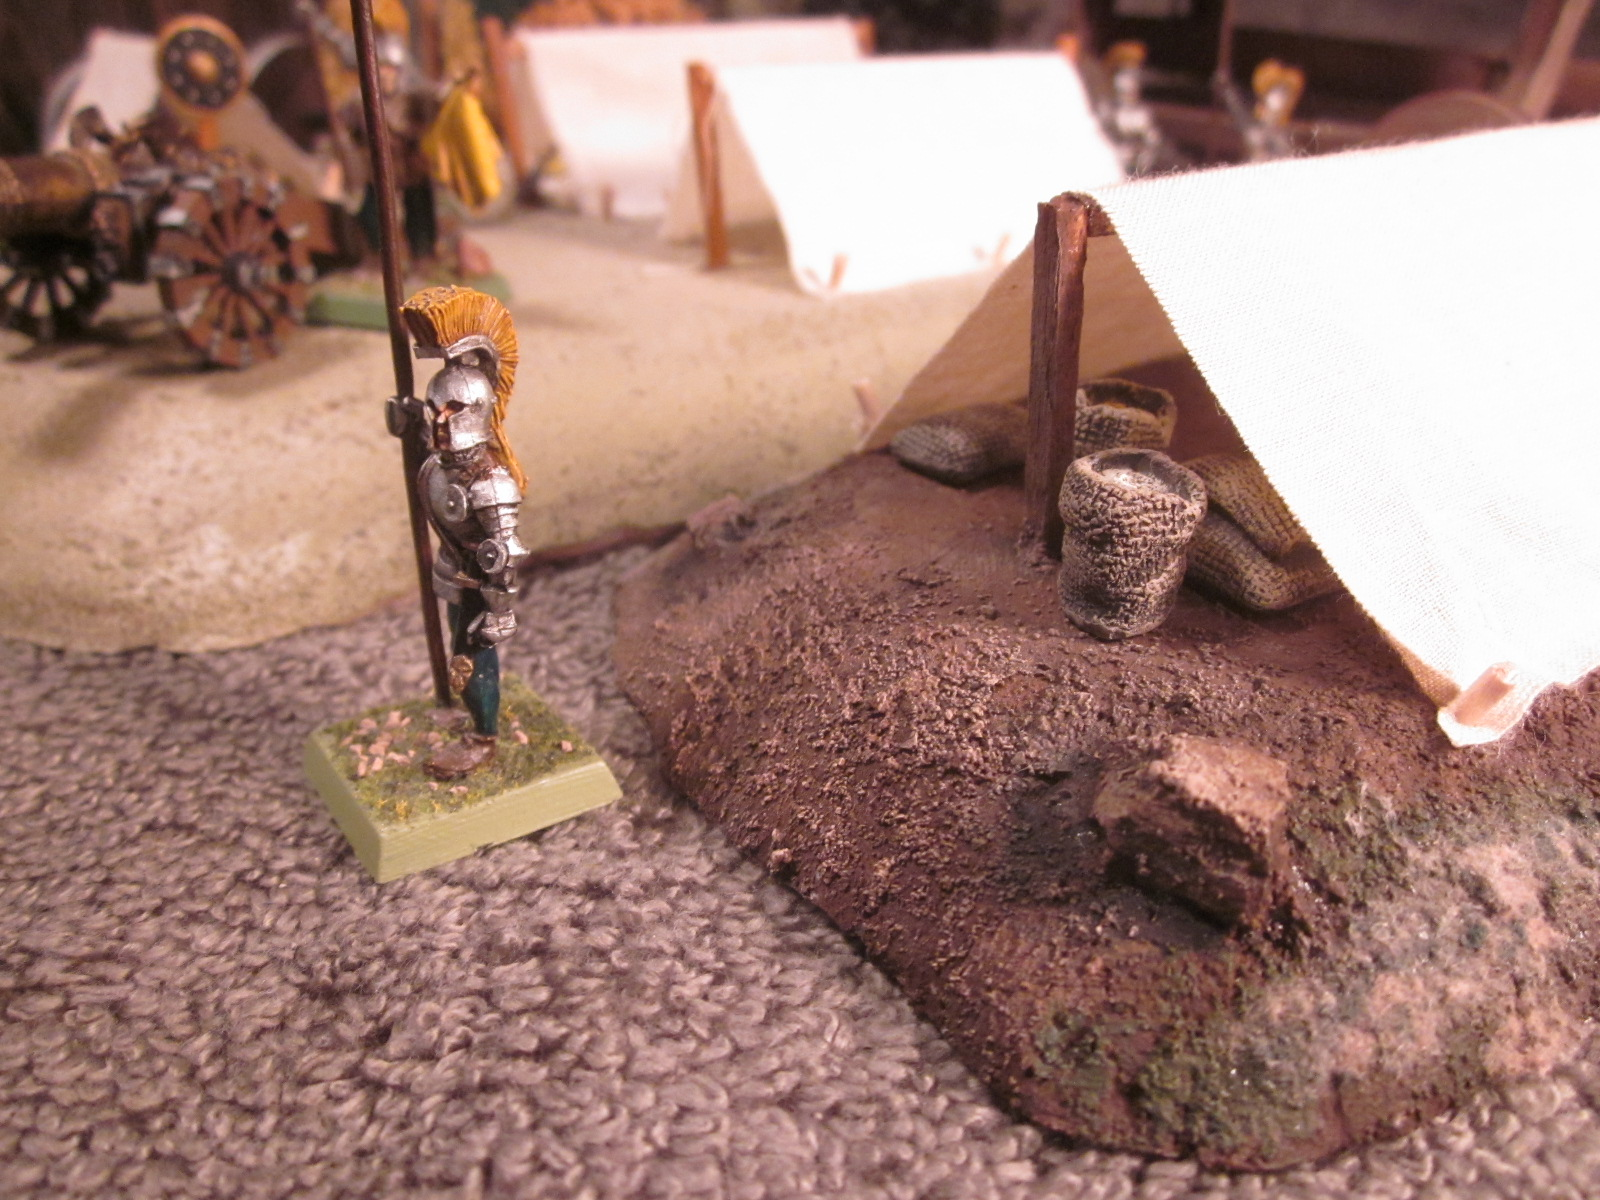 How To Build Tents for a Historical or Warhammer Siege Enc&ment & Battleground Hobbies: How To Build Tents for a Historical or ...